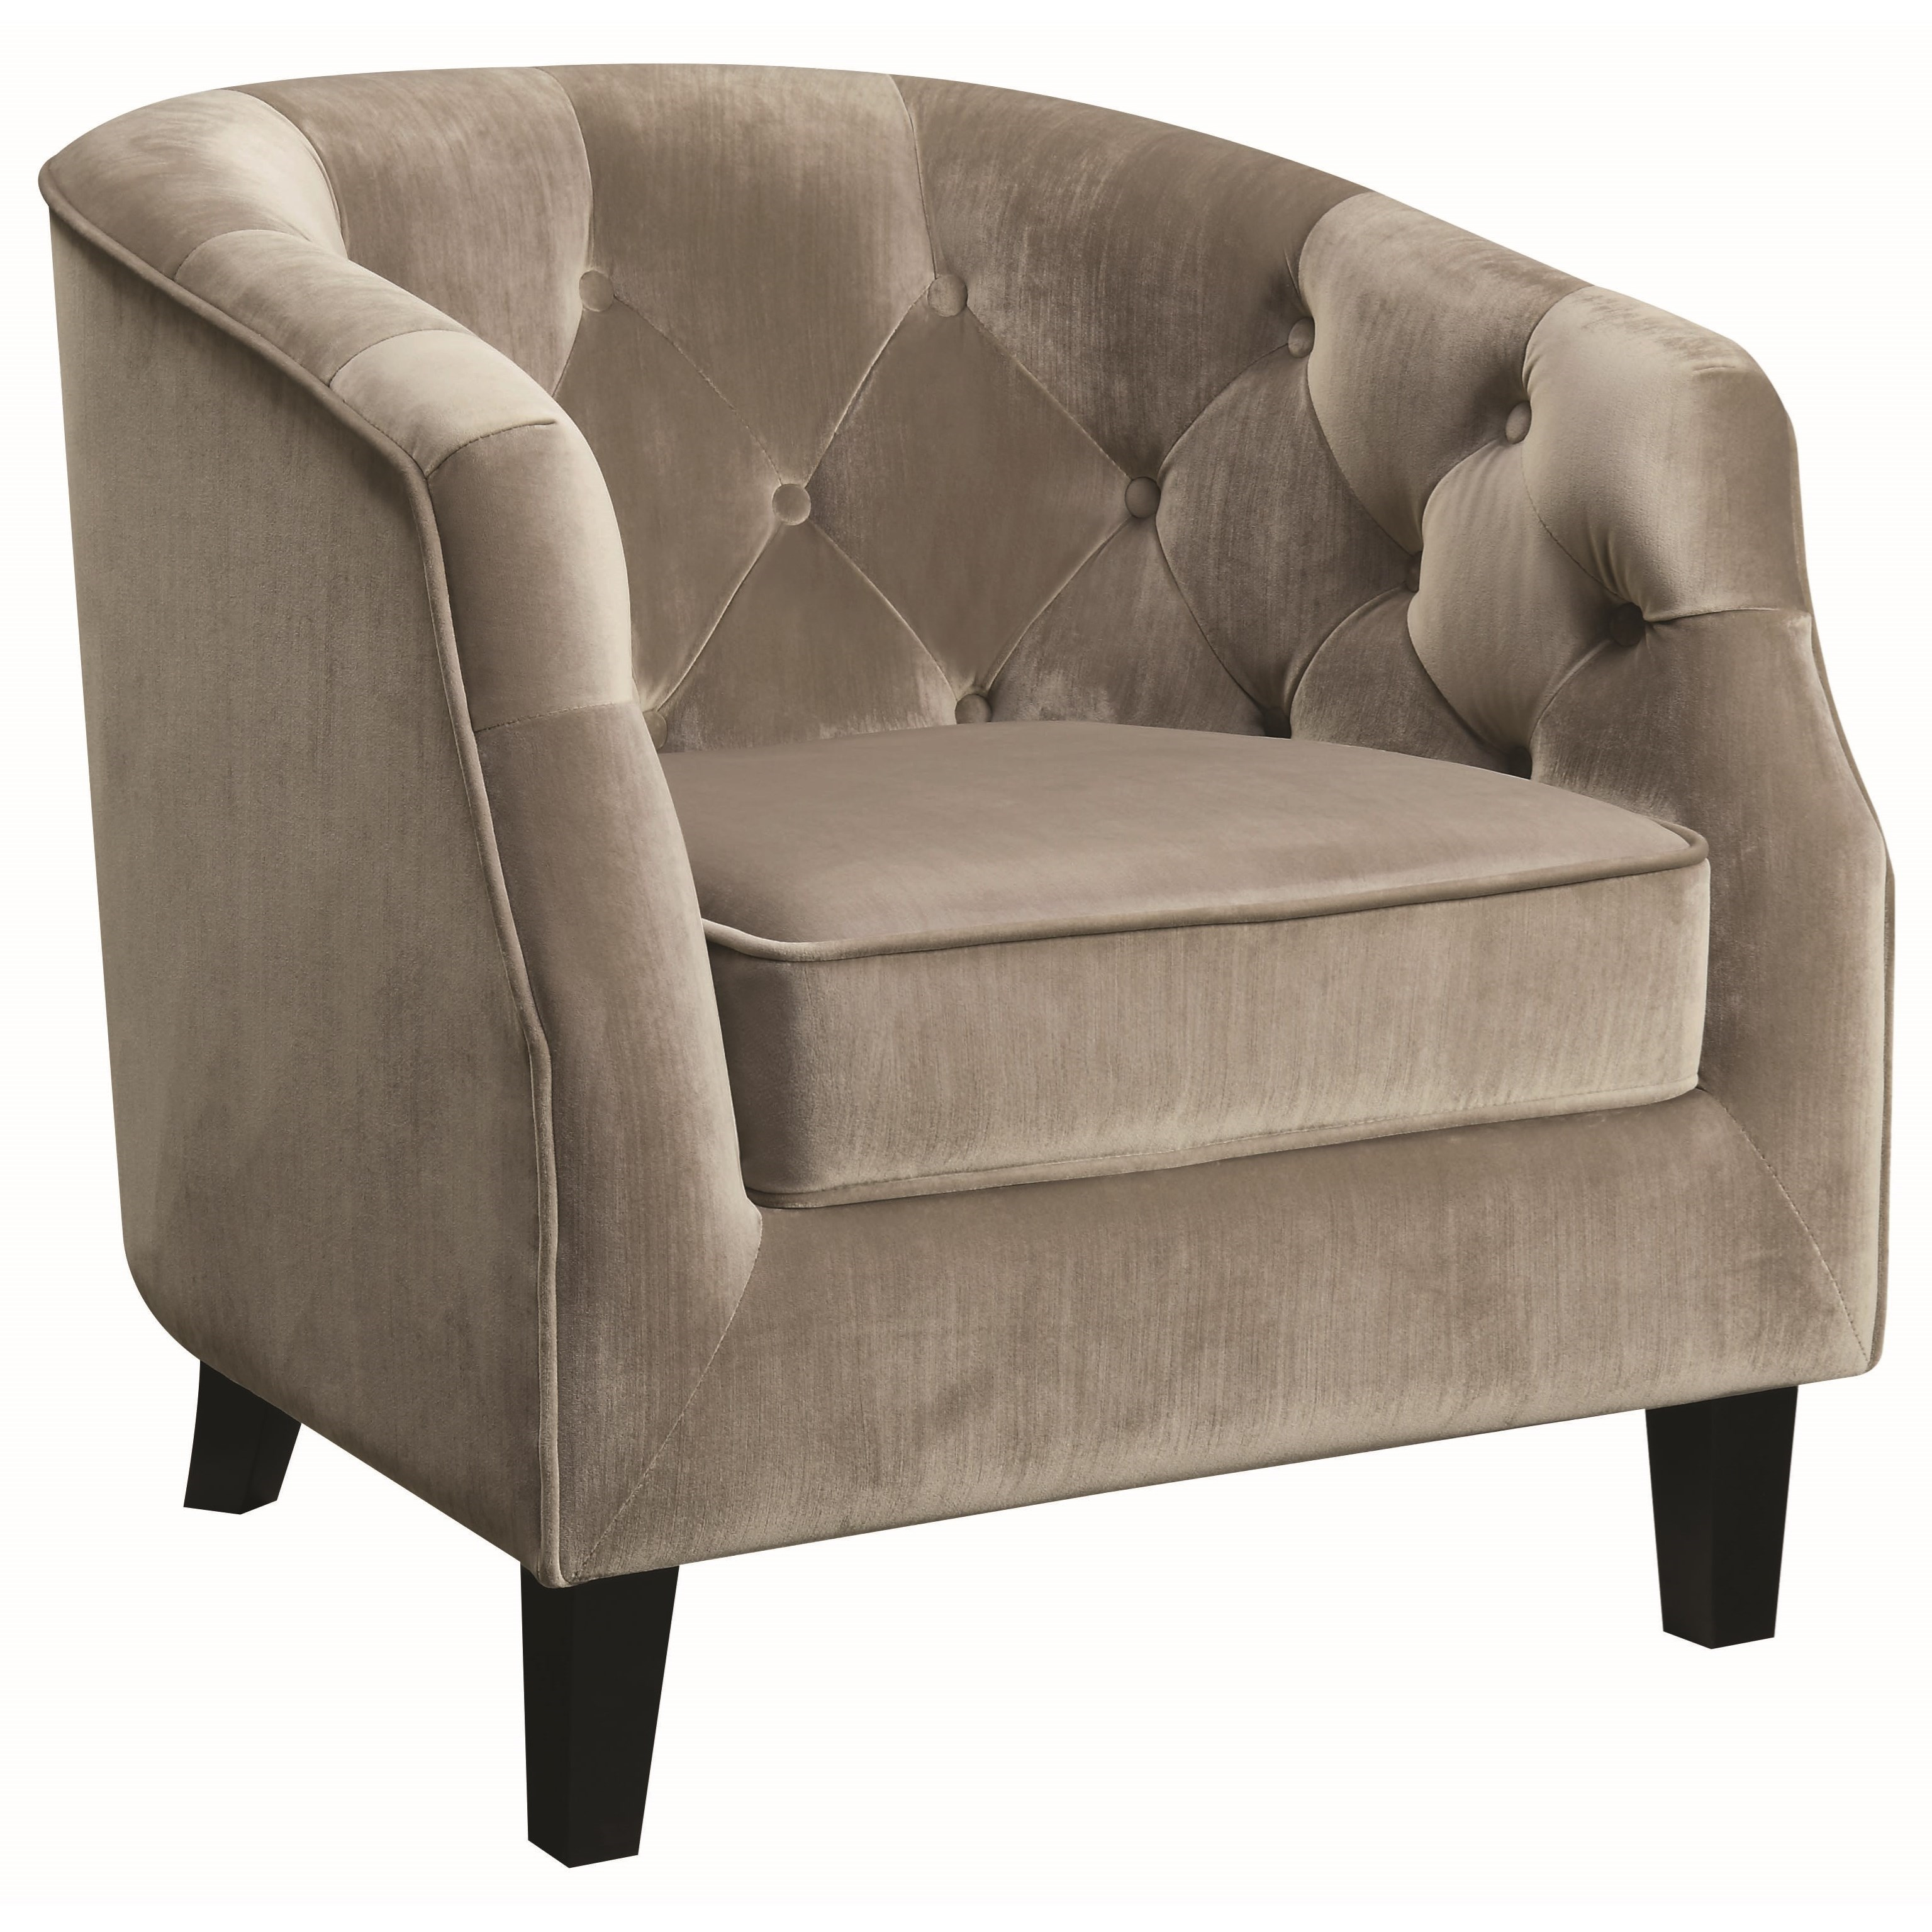 Coaster Accent Seating Accent Chair - Item Number: 902710